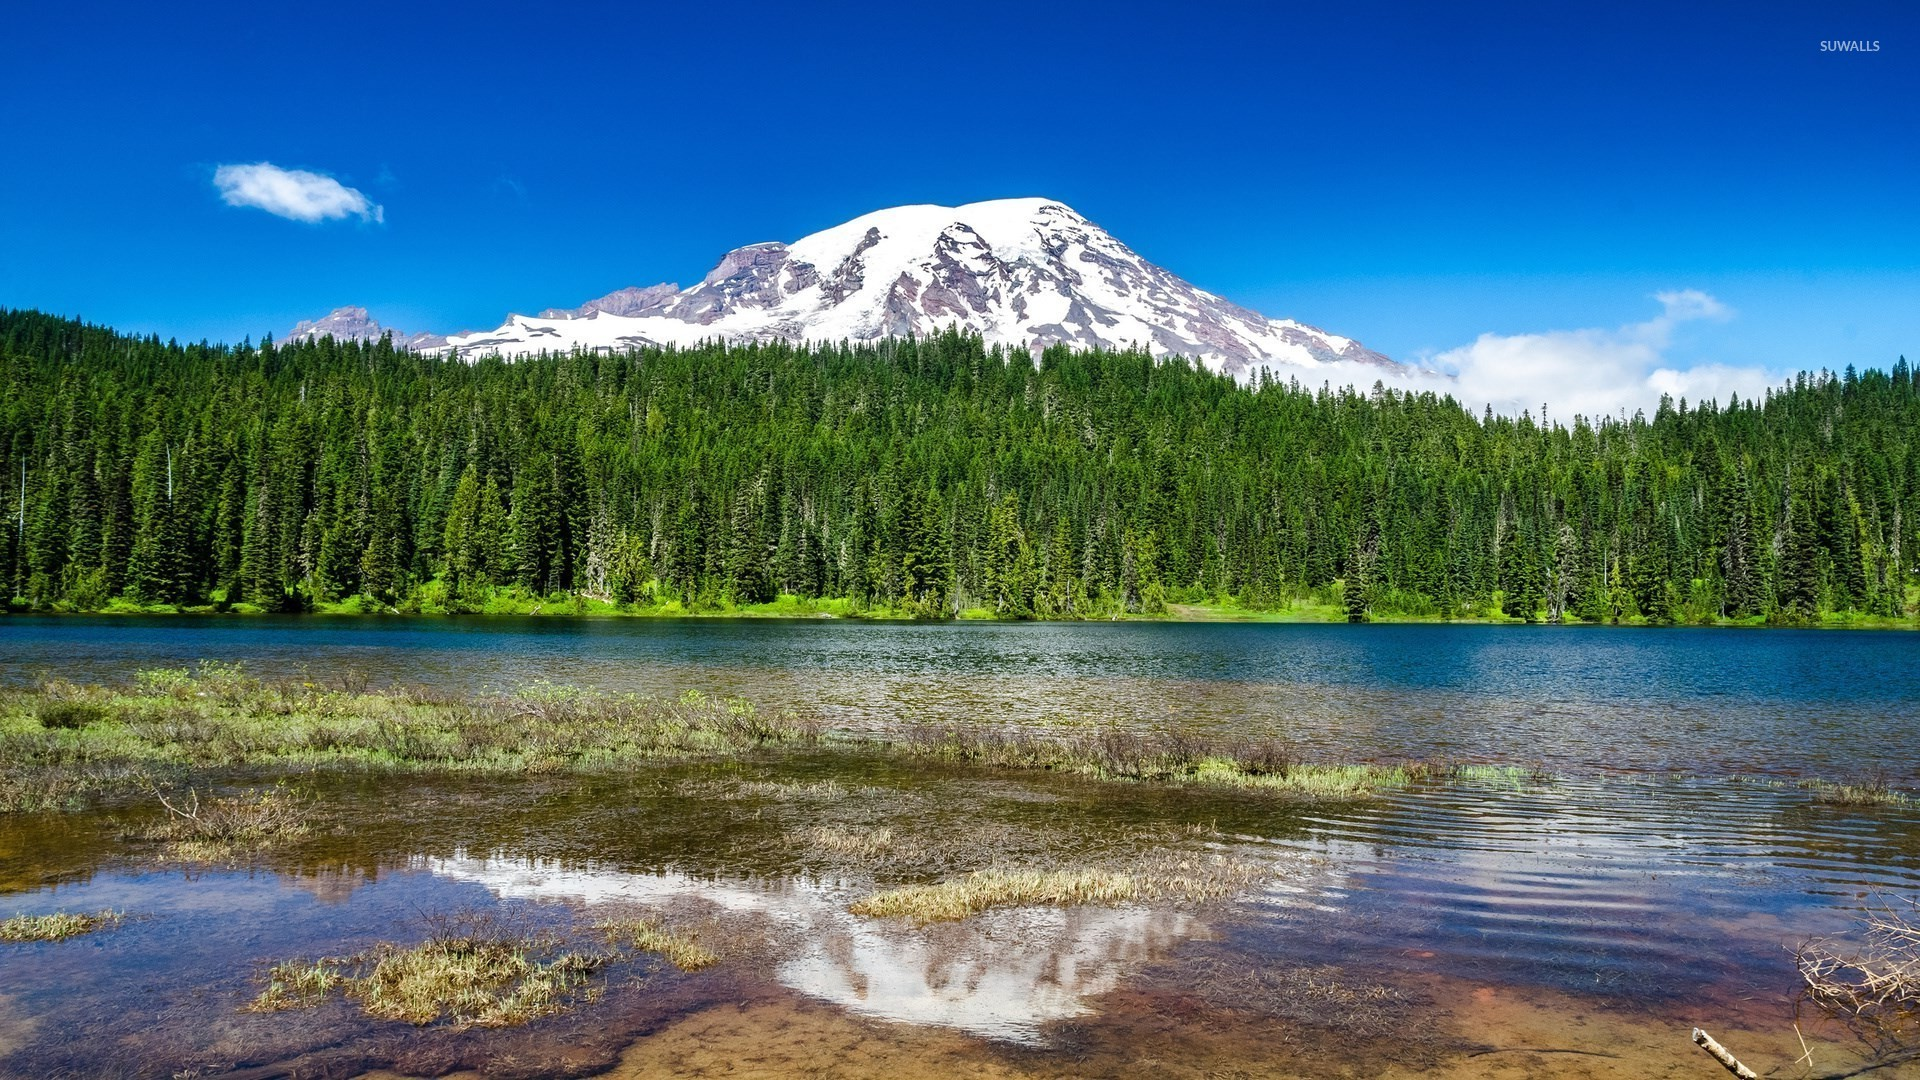 Mount Rainier wallpaper   Nature wallpapers   22657 1280x800